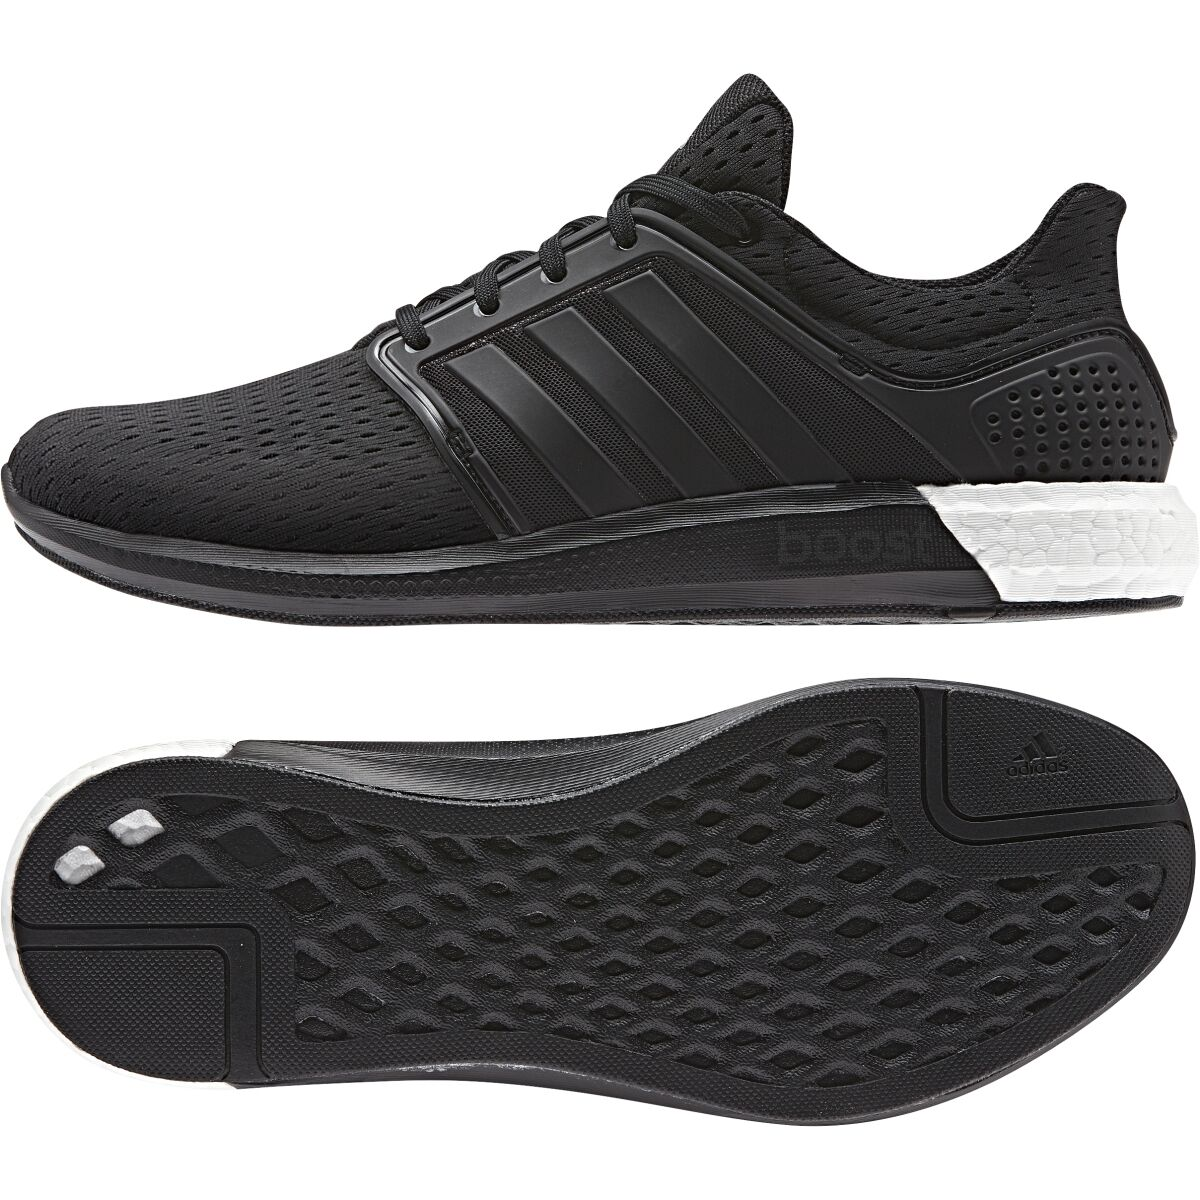 Adidas Youth Solar Boost M Lightweight Running   Athletic  D68993 Sizes  4 - 6.5  factory direct sales